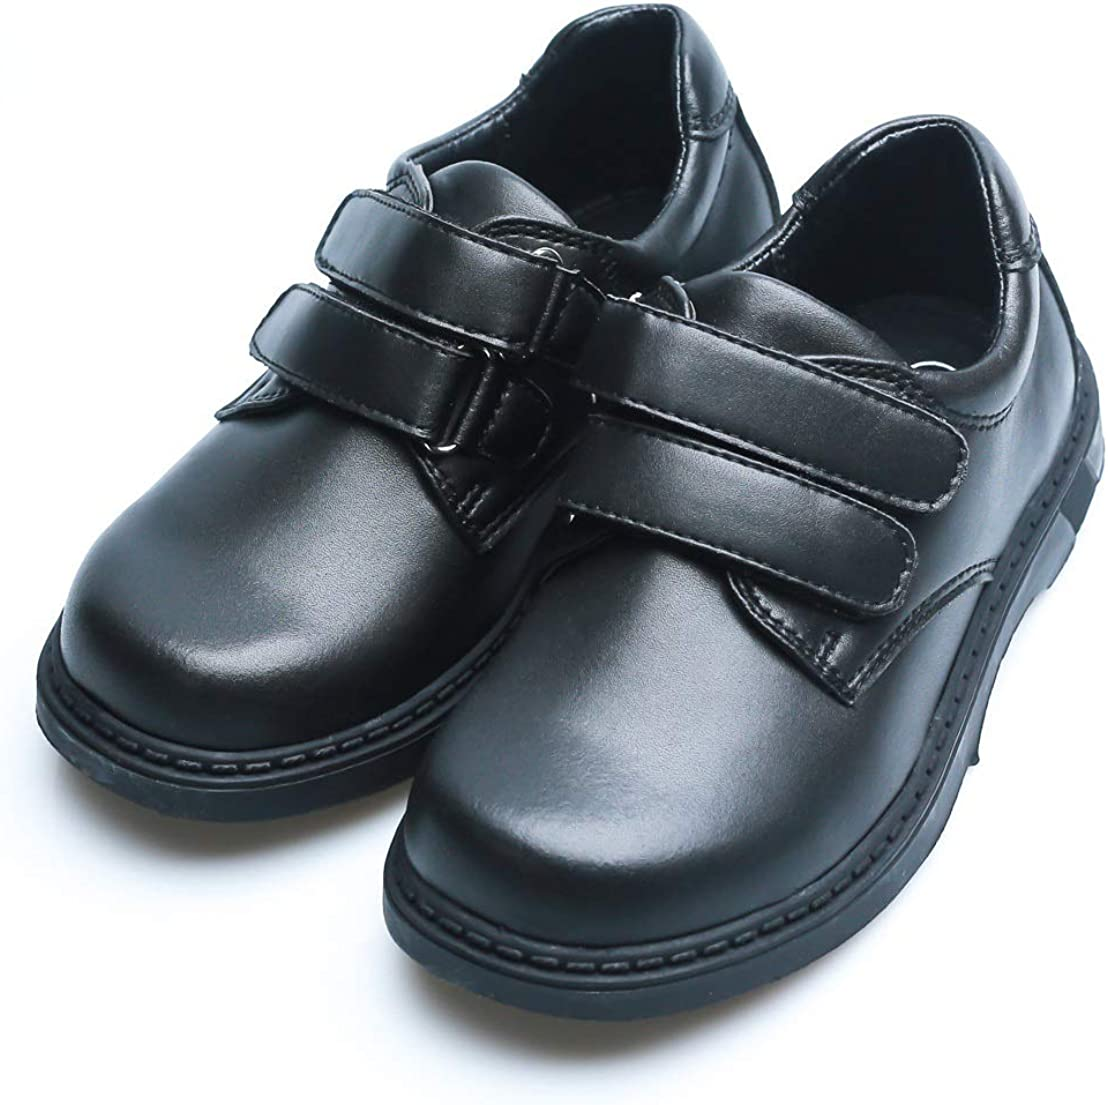 formal leather shoes for boys